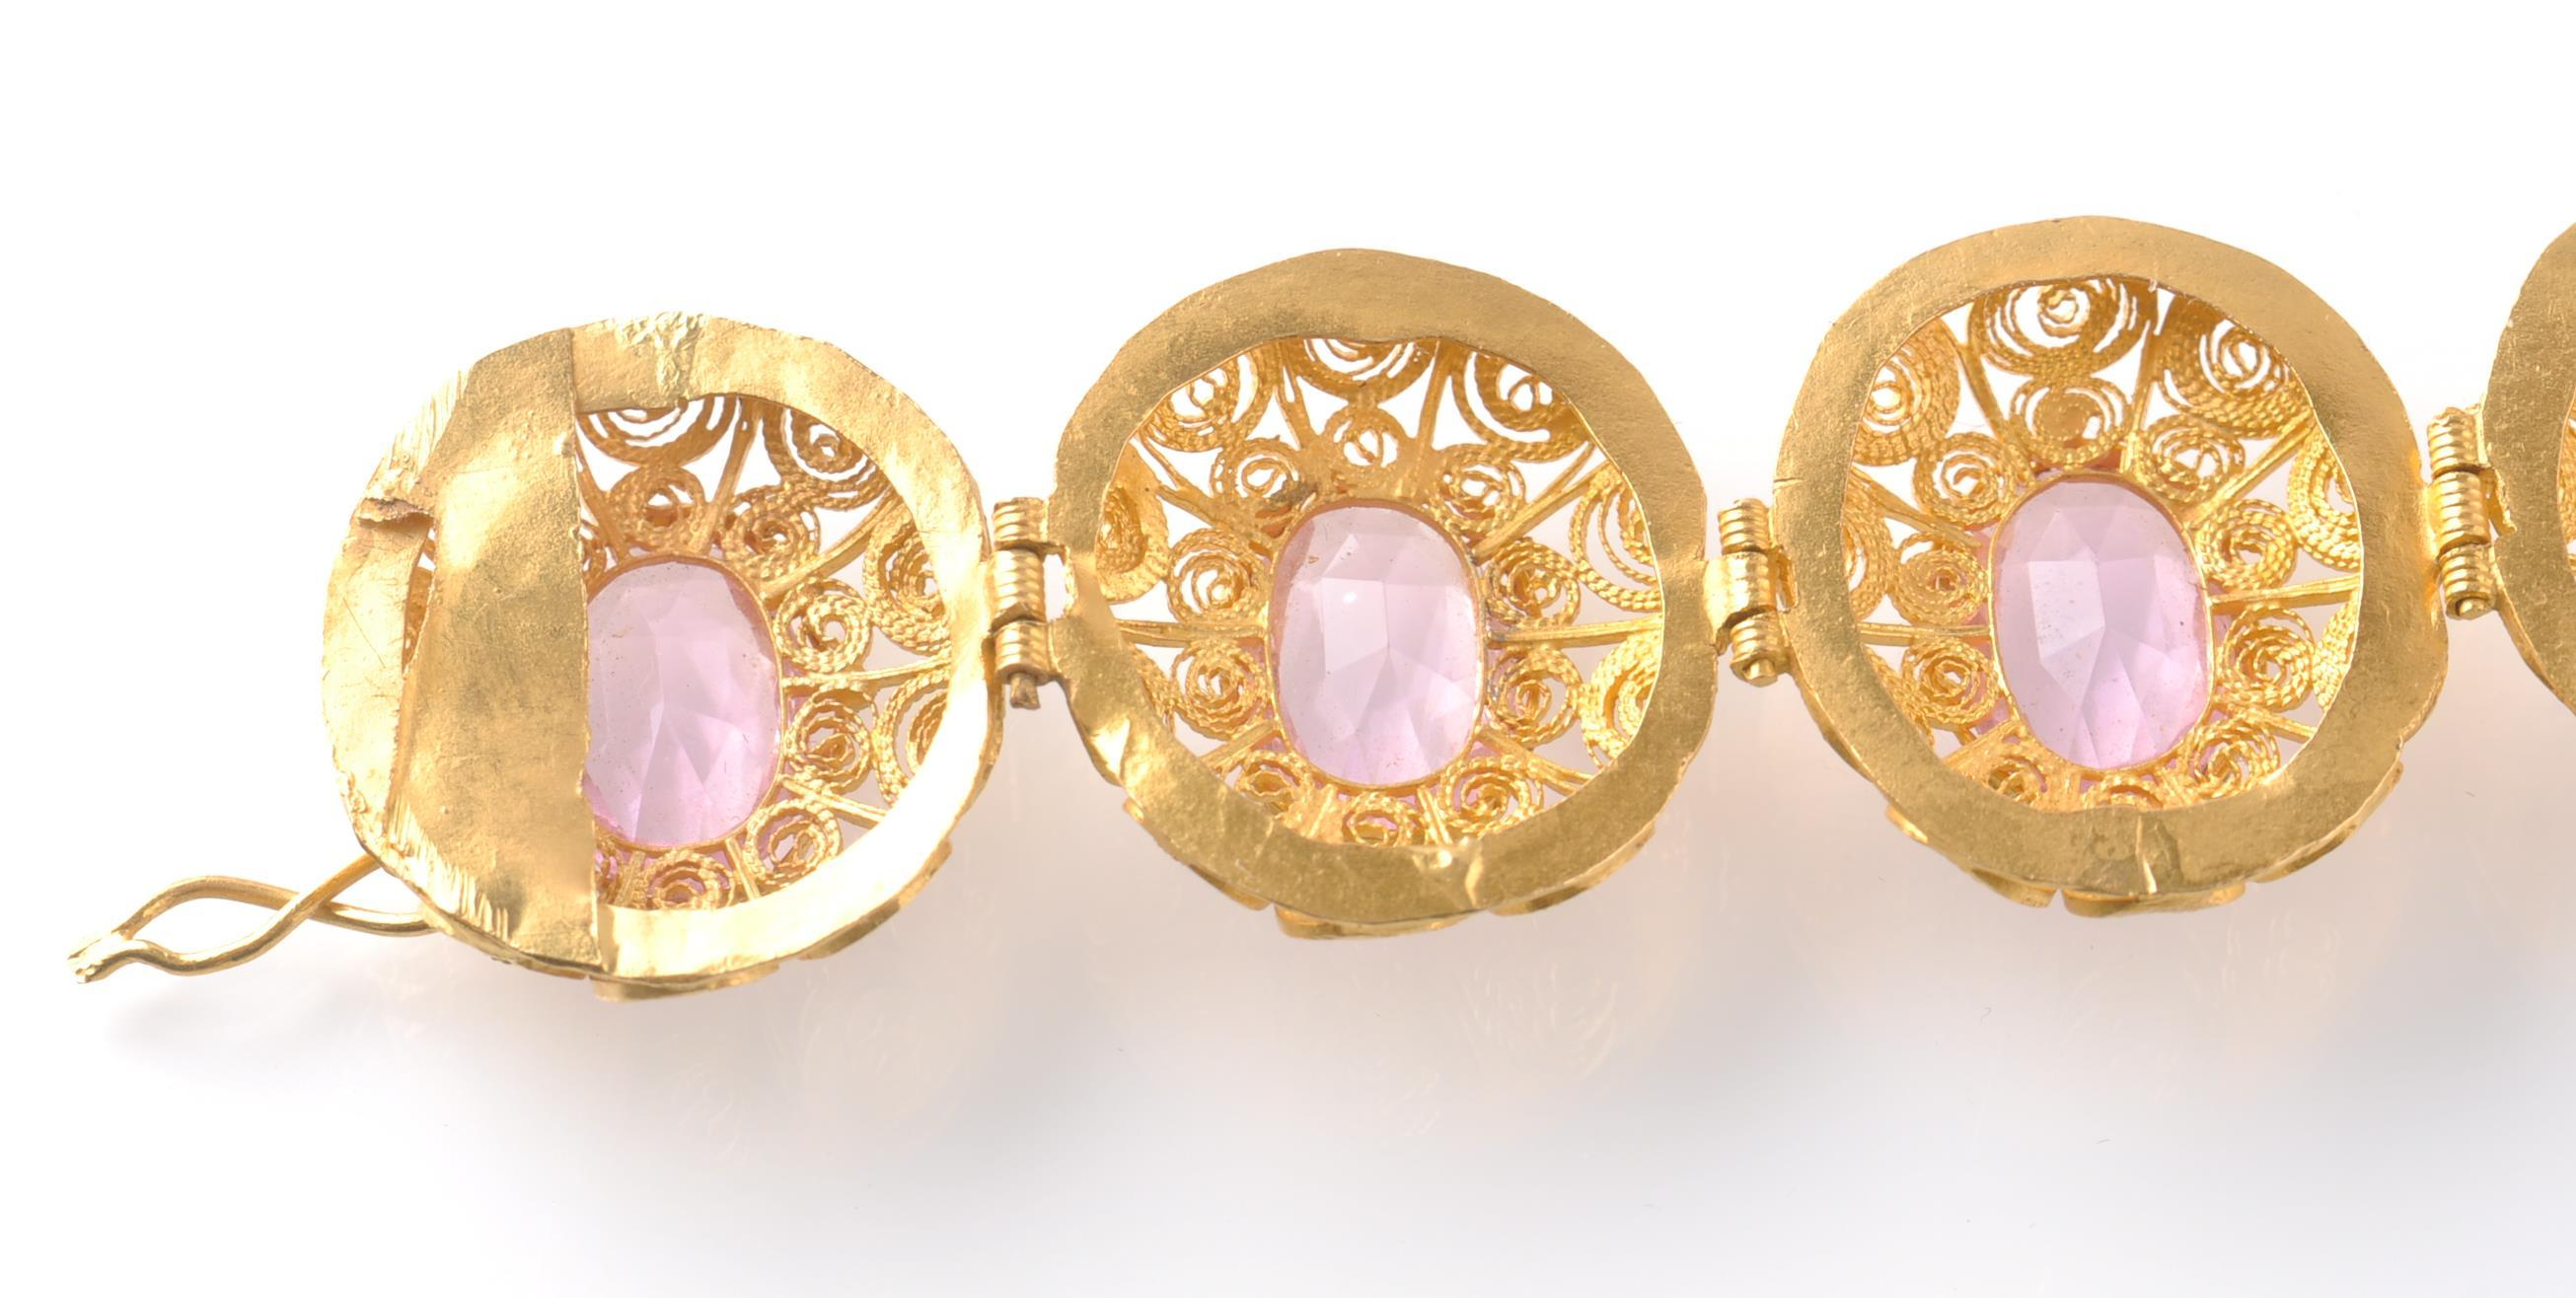 A GOLD FILIGREE AND PINK STONE BRACELET WITH PIN - Image 8 of 9